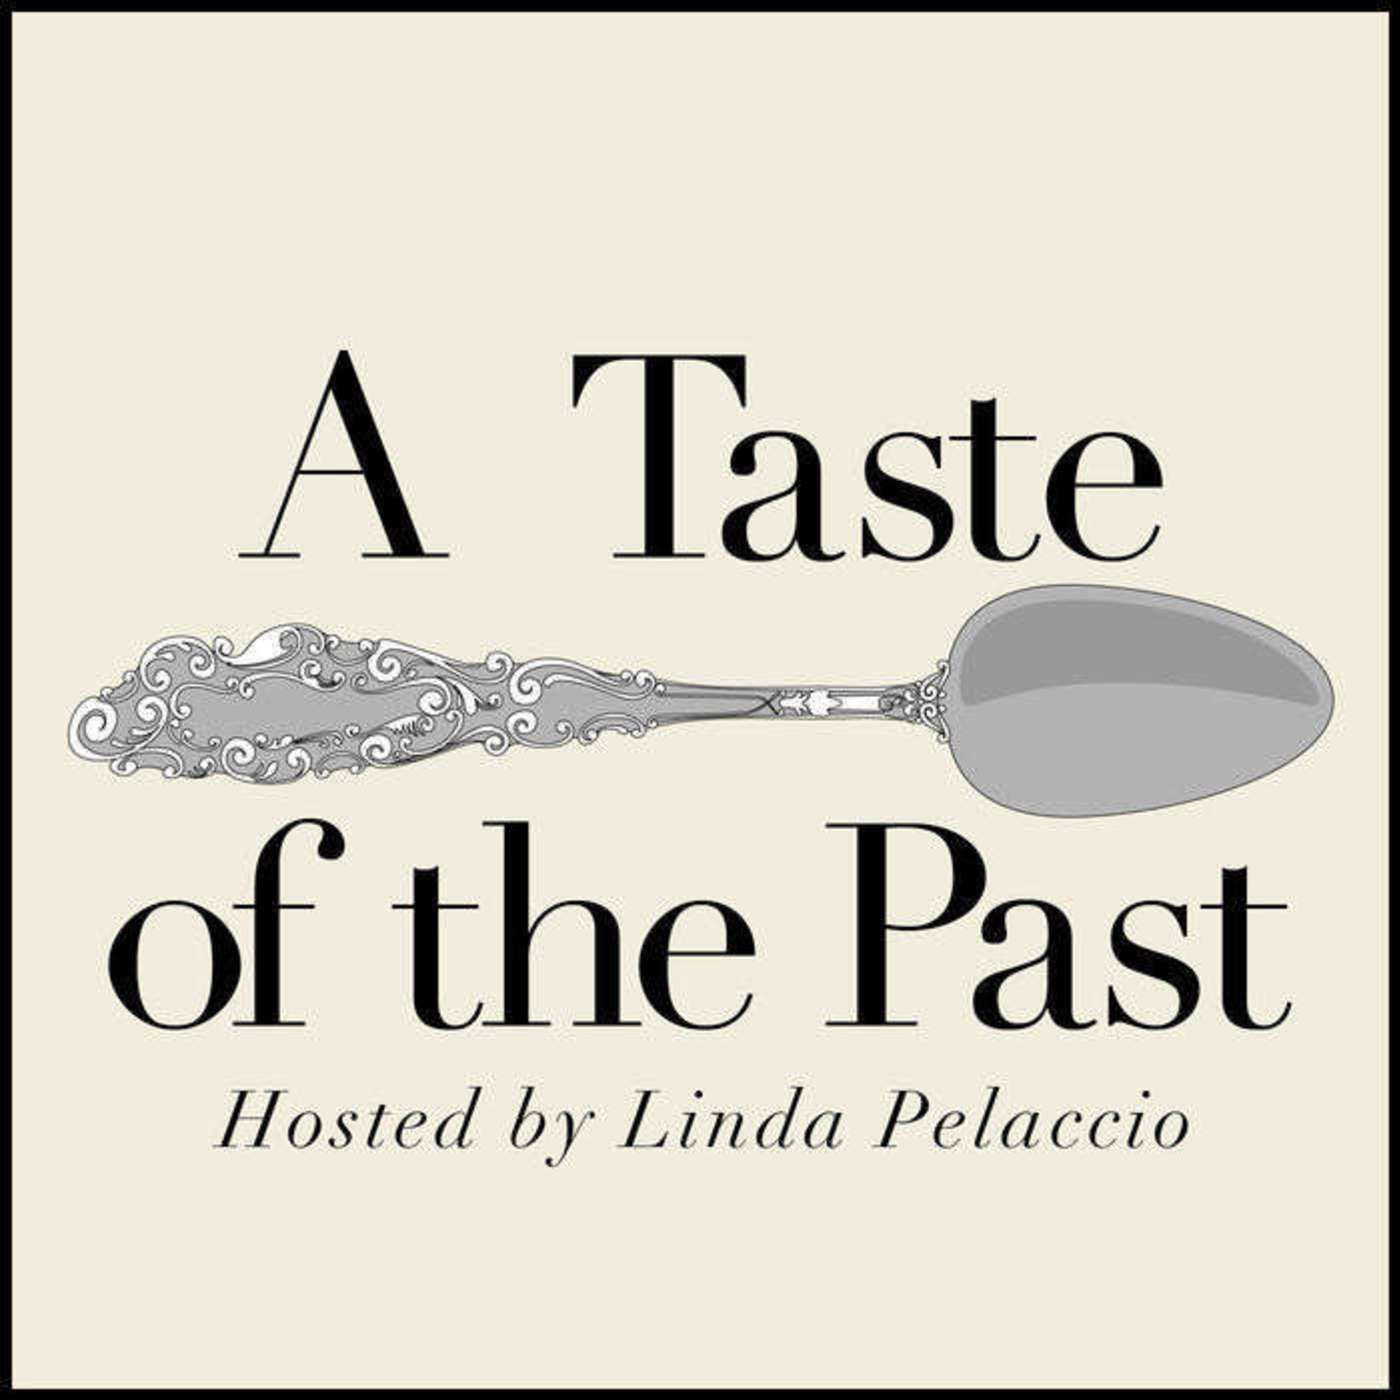 Episode 125: Nancy Harmon Jenkins, Learning Culture through Food